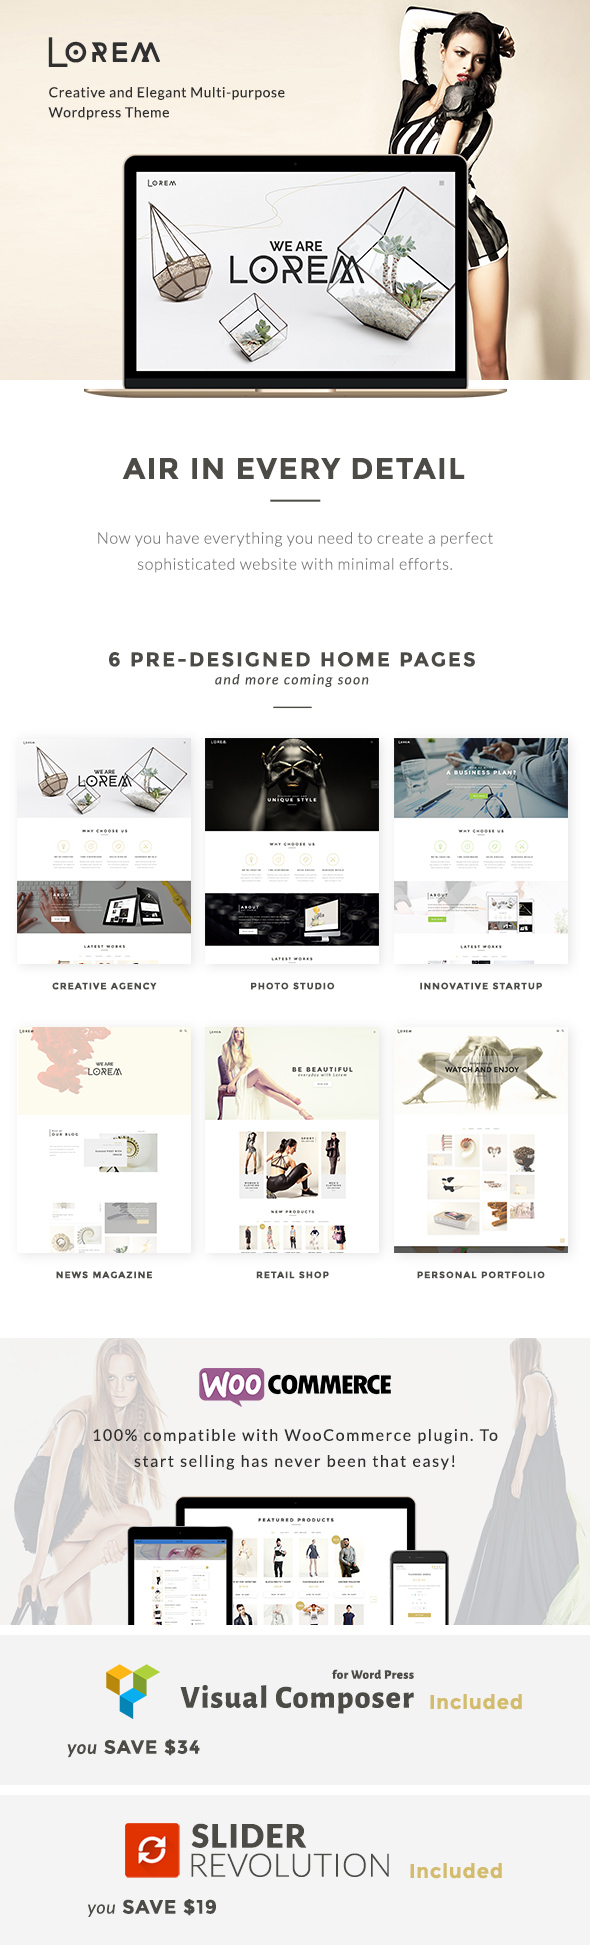 Lorem - Creative & Fashion Multipurpose Store Theme